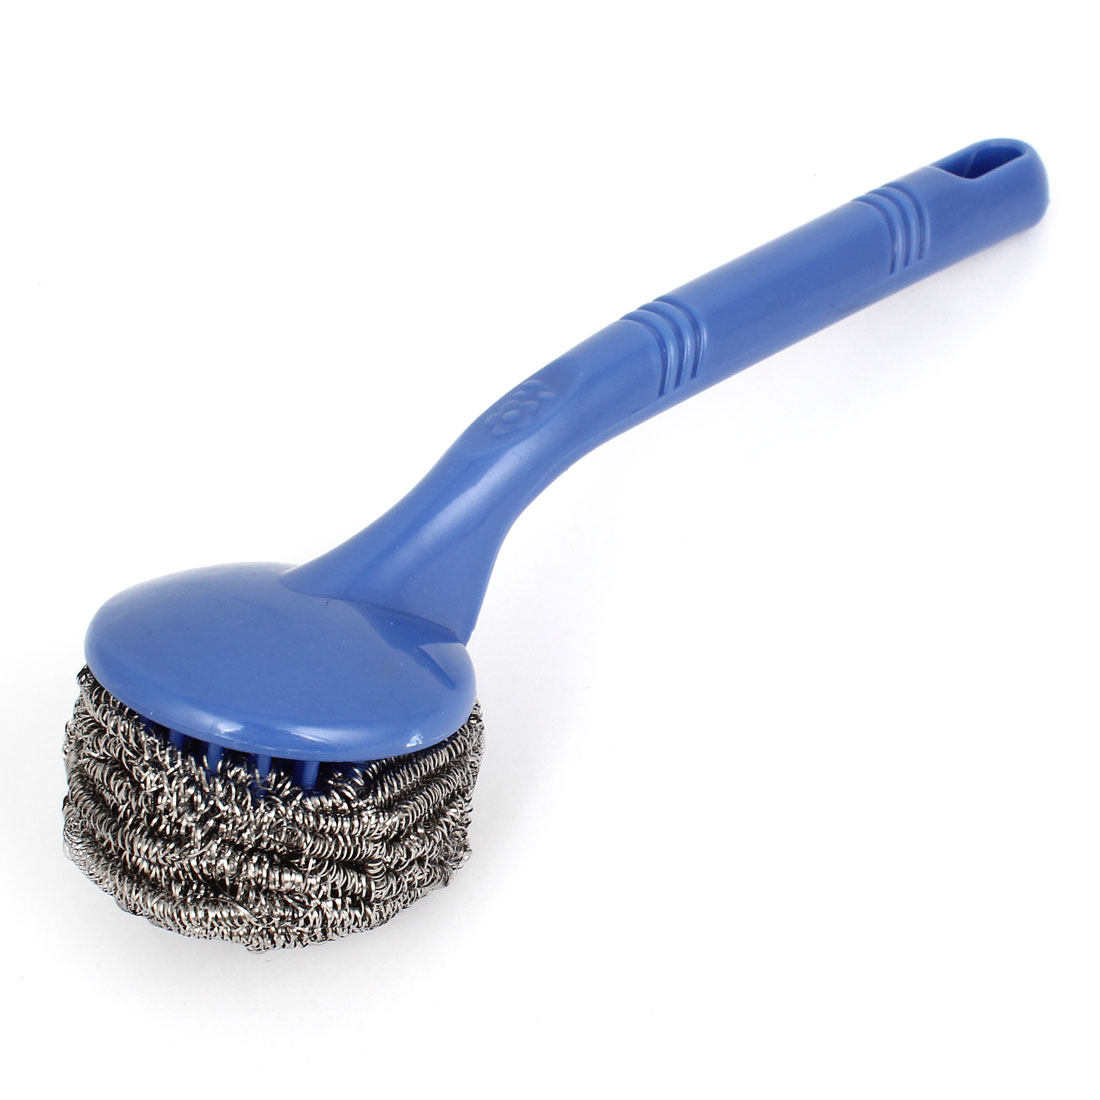 kitchen scrub brush brizo venuto faucet unique bargains blue plastic handle steel coil